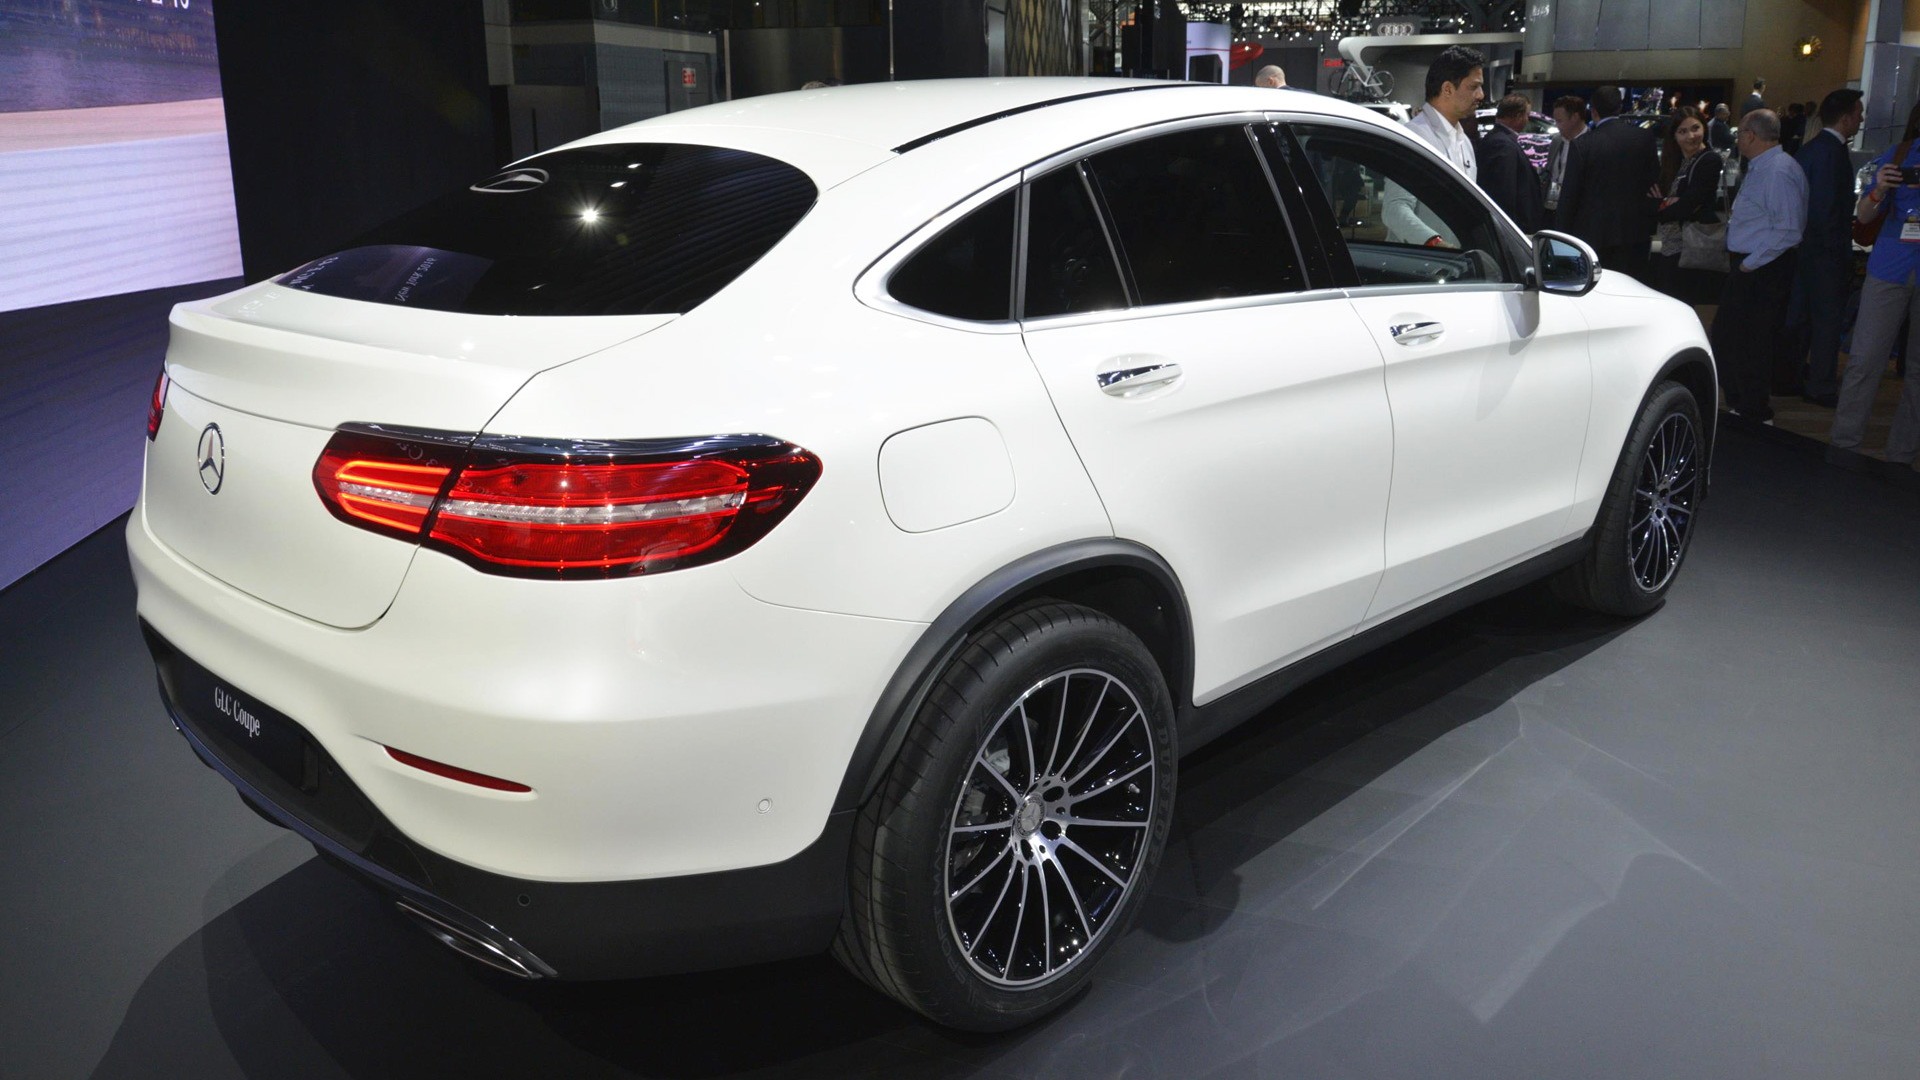 2017 Mercedes-Benz GLC Coupe, 2016 New York Auto Show